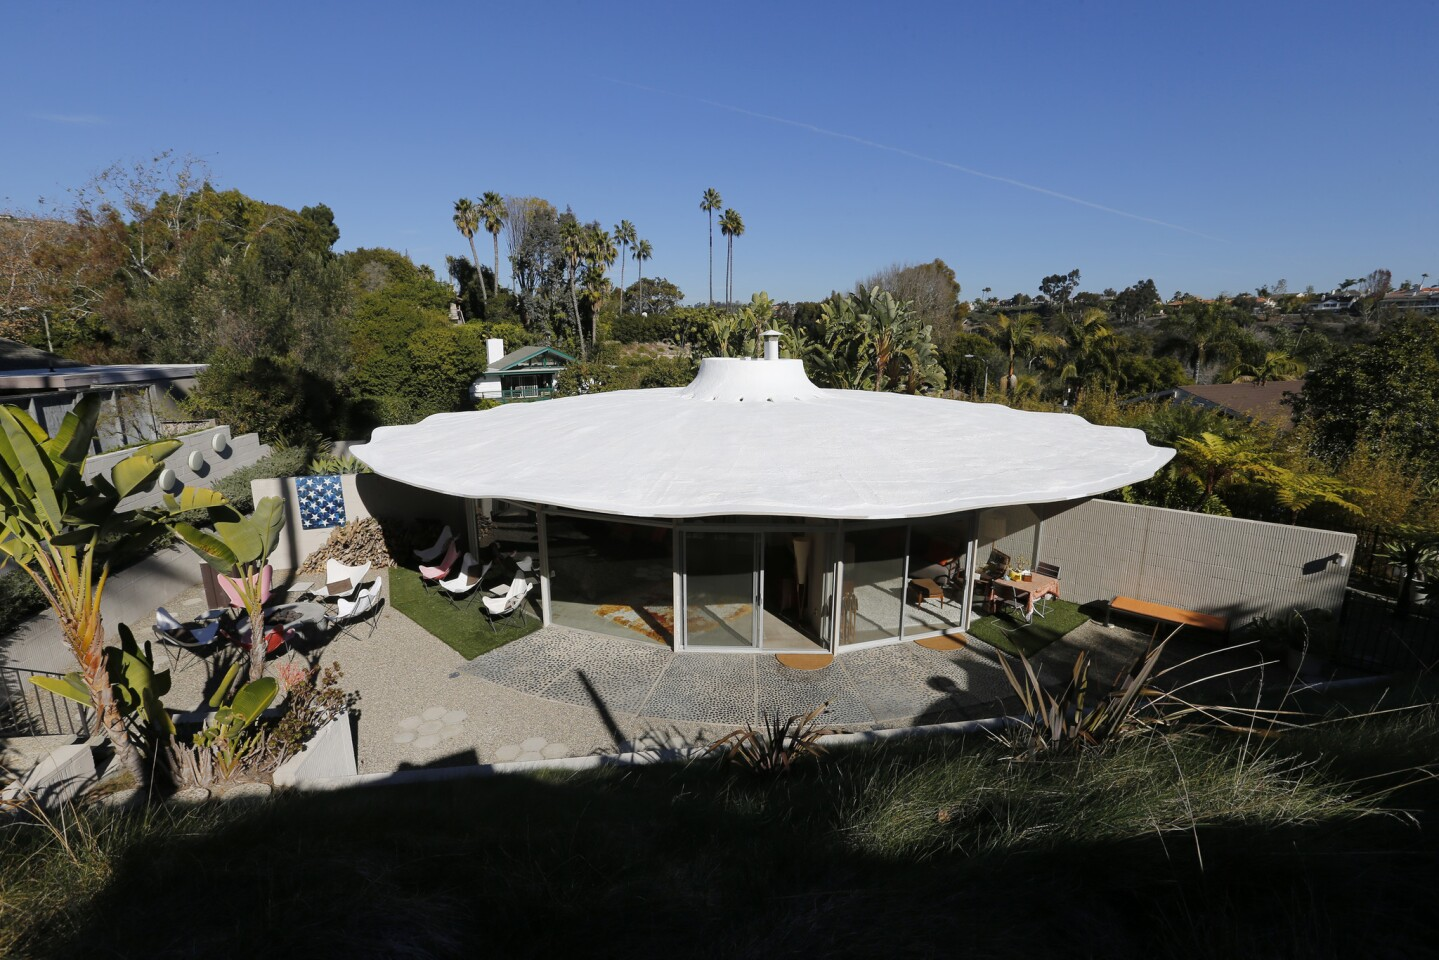 Exterior view of Einar Johnson and Pat Gough's Horizon home in Laguna Niguel. Horizon Homes, a 1960s program that encouraged architects to work in concrete, is the subject of an upcoming book by Laguna Niguel author Ted Wells.